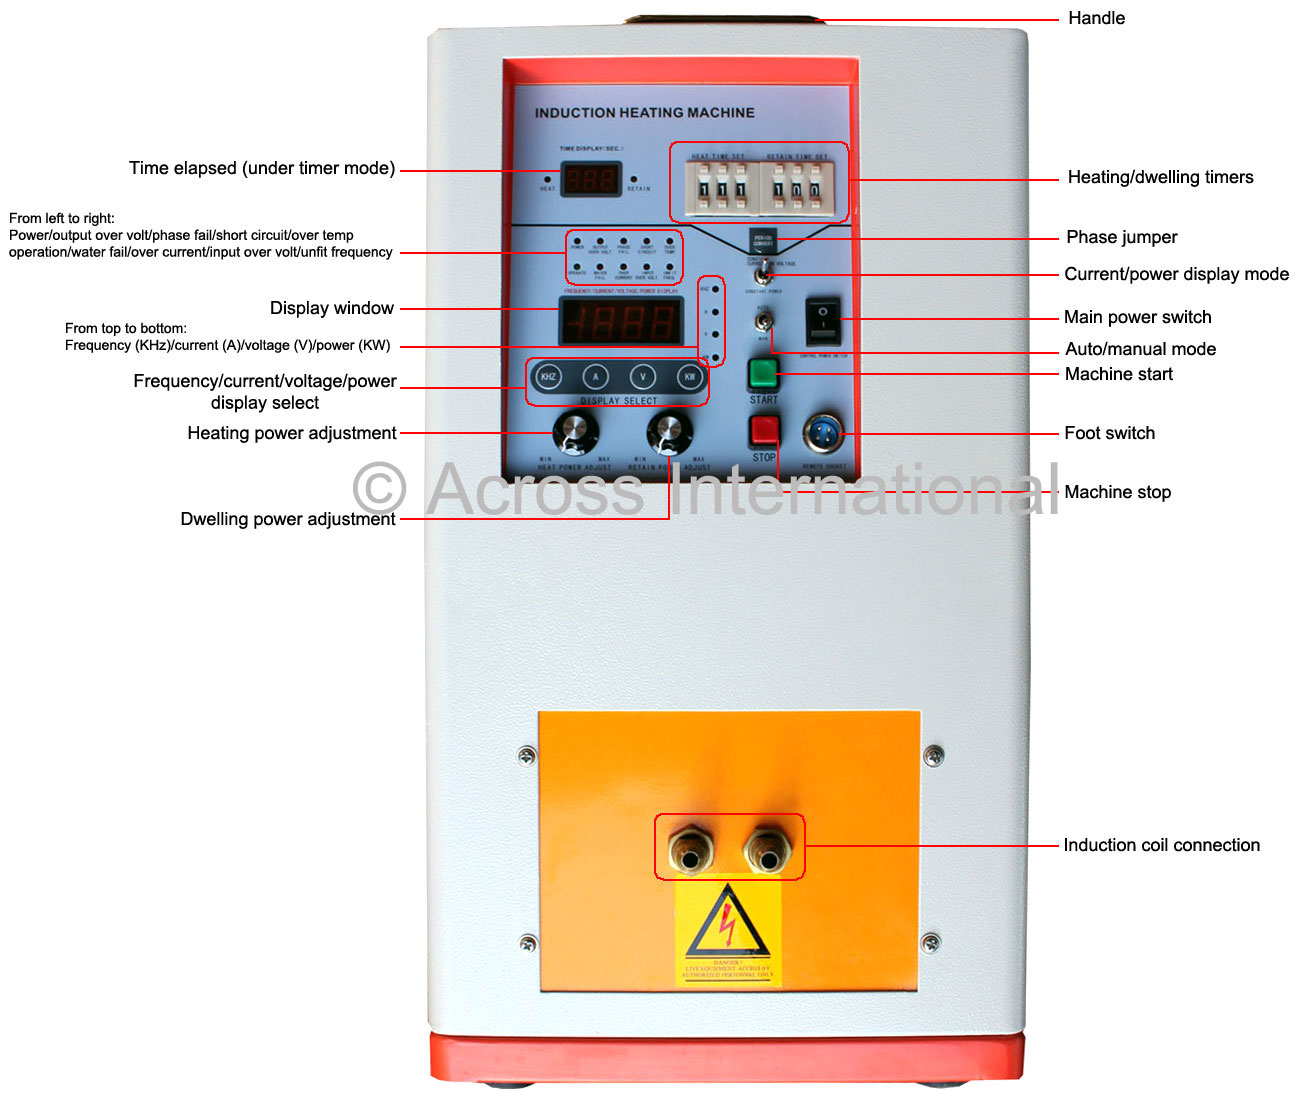 Ihg10 Compact High Frequency Induction Heater W Timers 100 500khz 66kw Heating Diagram